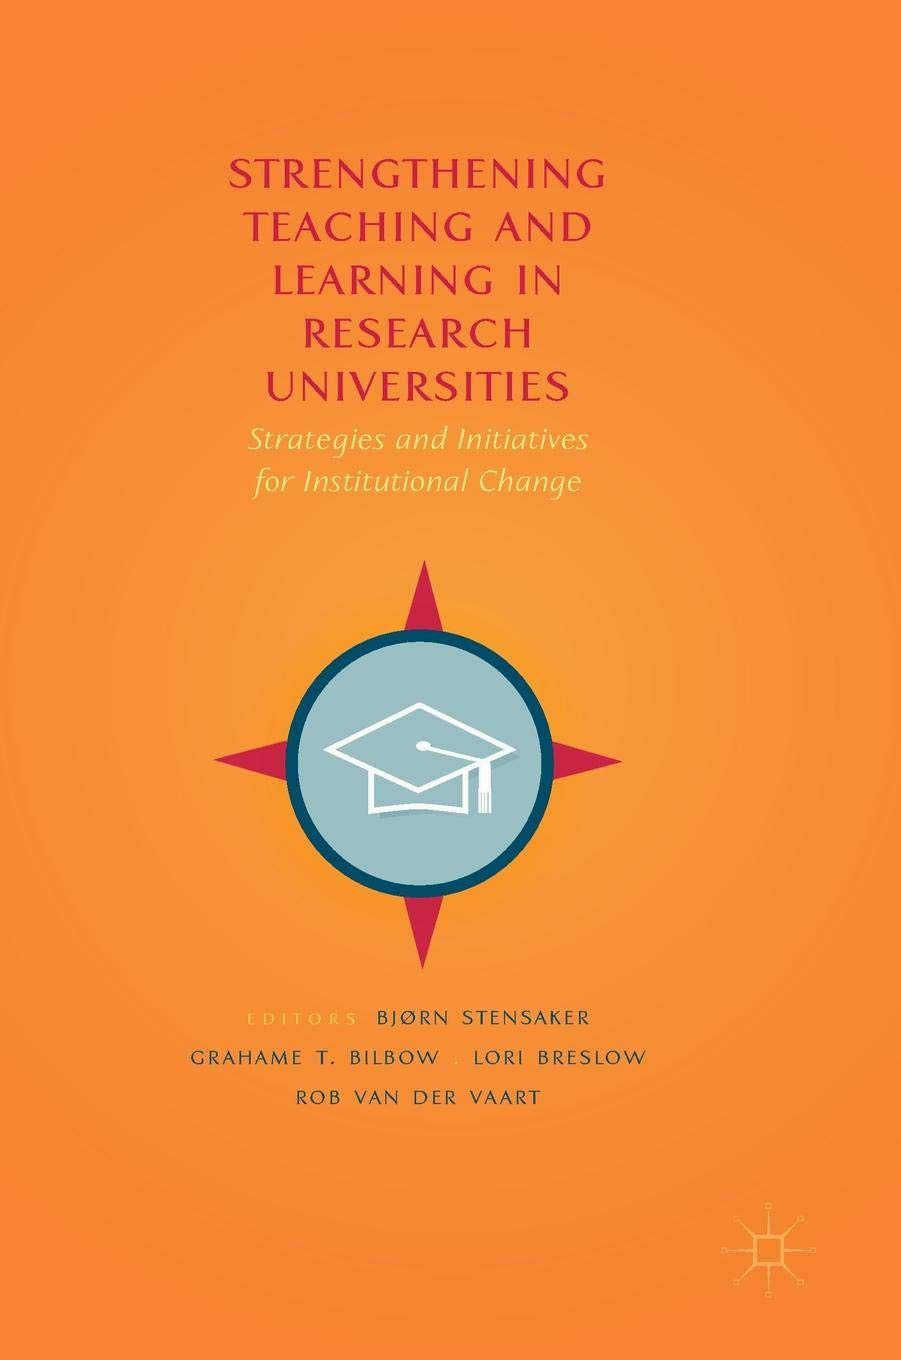 Strengthening Teaching And Learning In Research Universities  Strategies And Initiatives For Institutional Change